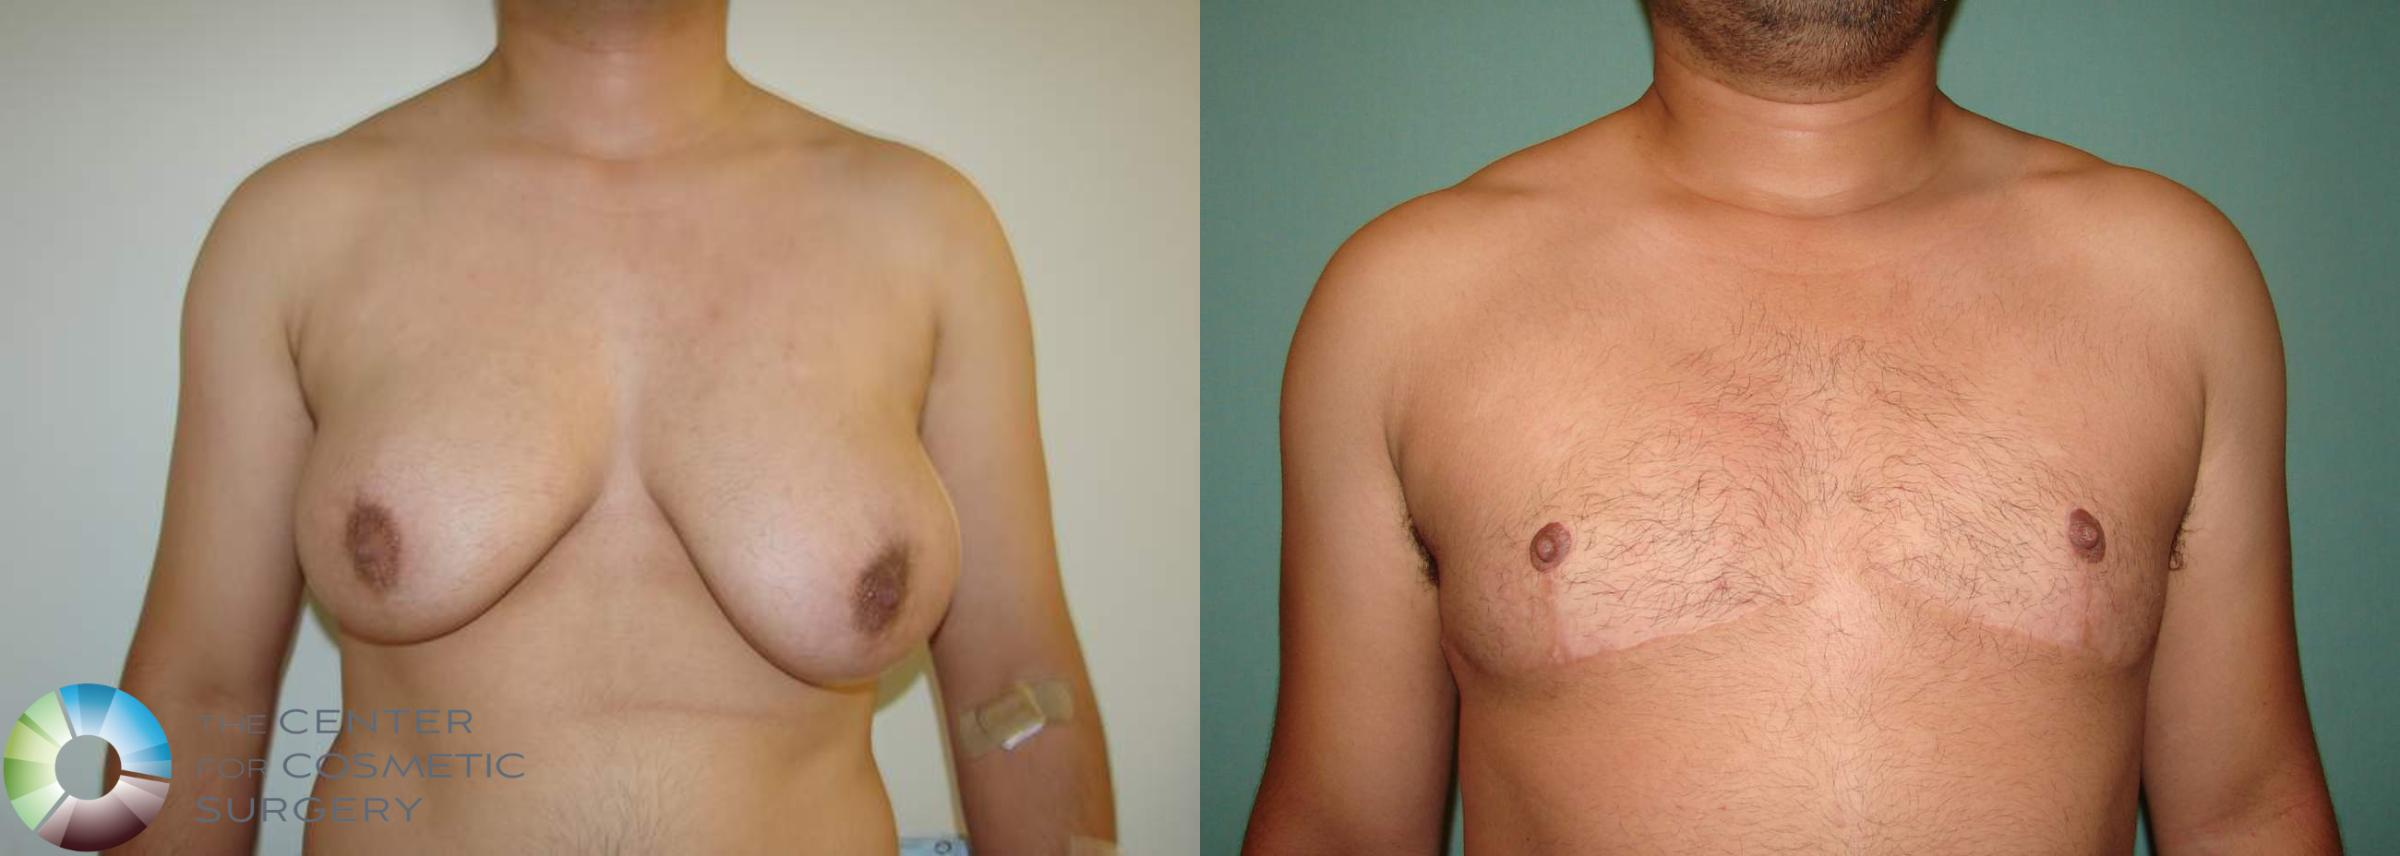 FTM Top Surgery/Chest Masculinization Case 566 Before & After View #1 | Golden, CO | The Center for Cosmetic Surgery